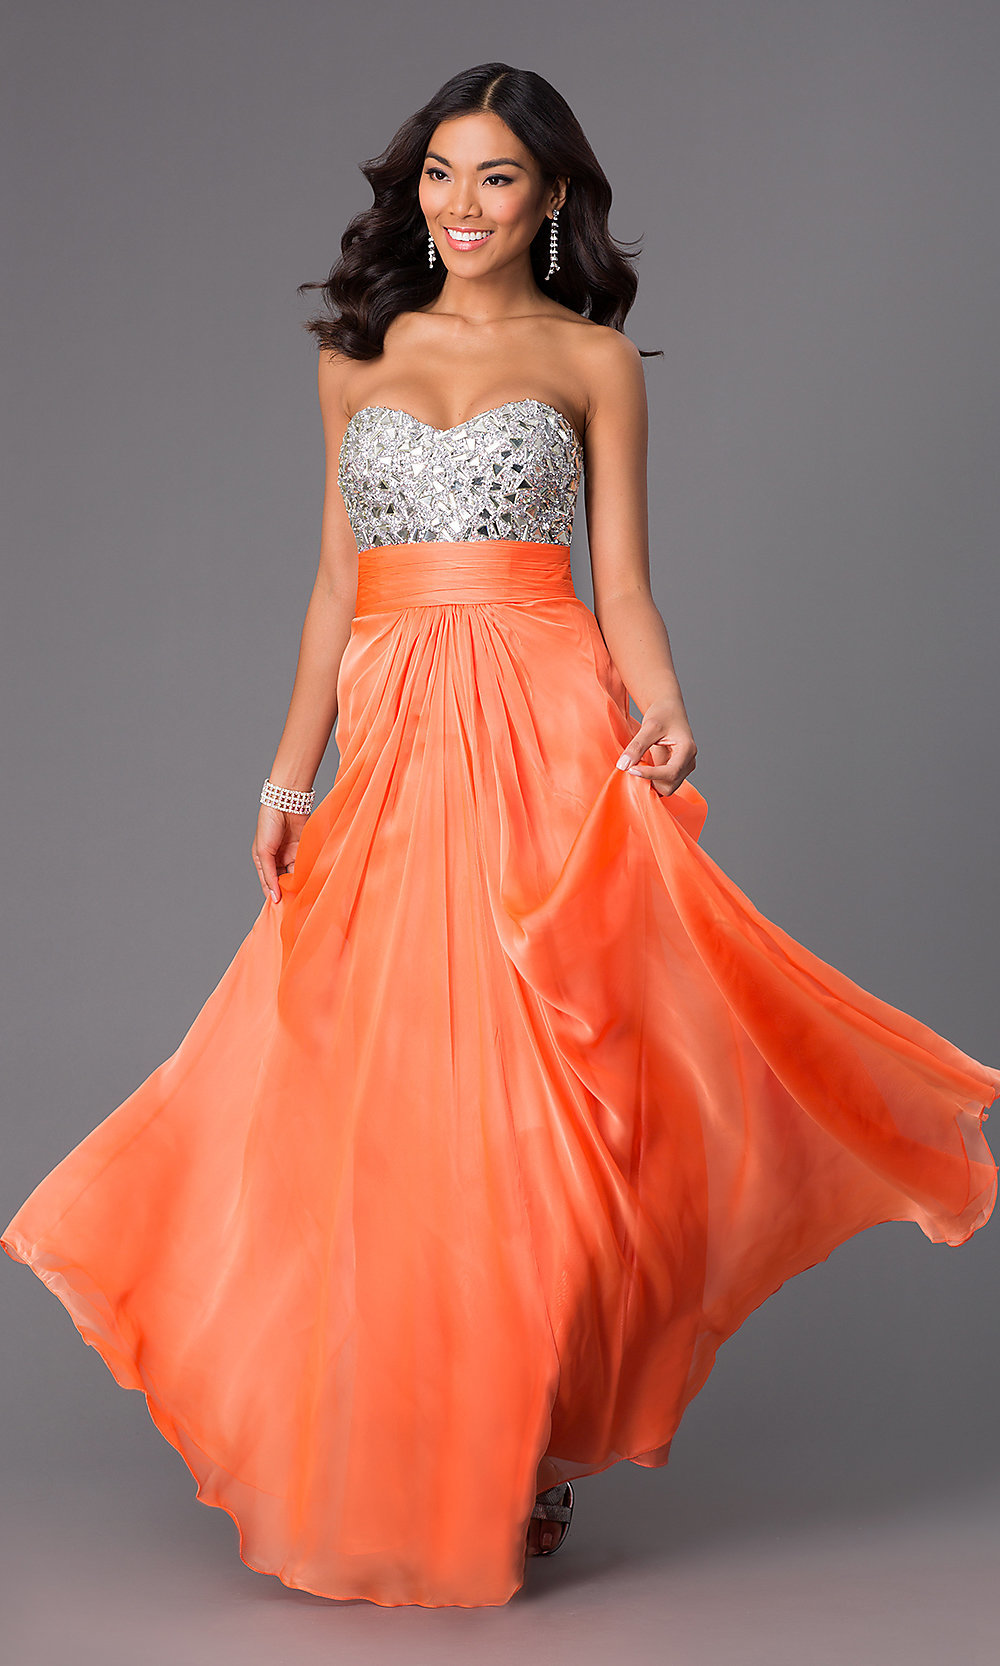 La Femme 24336 - Strapless Sweetheart Tulle A-Line with